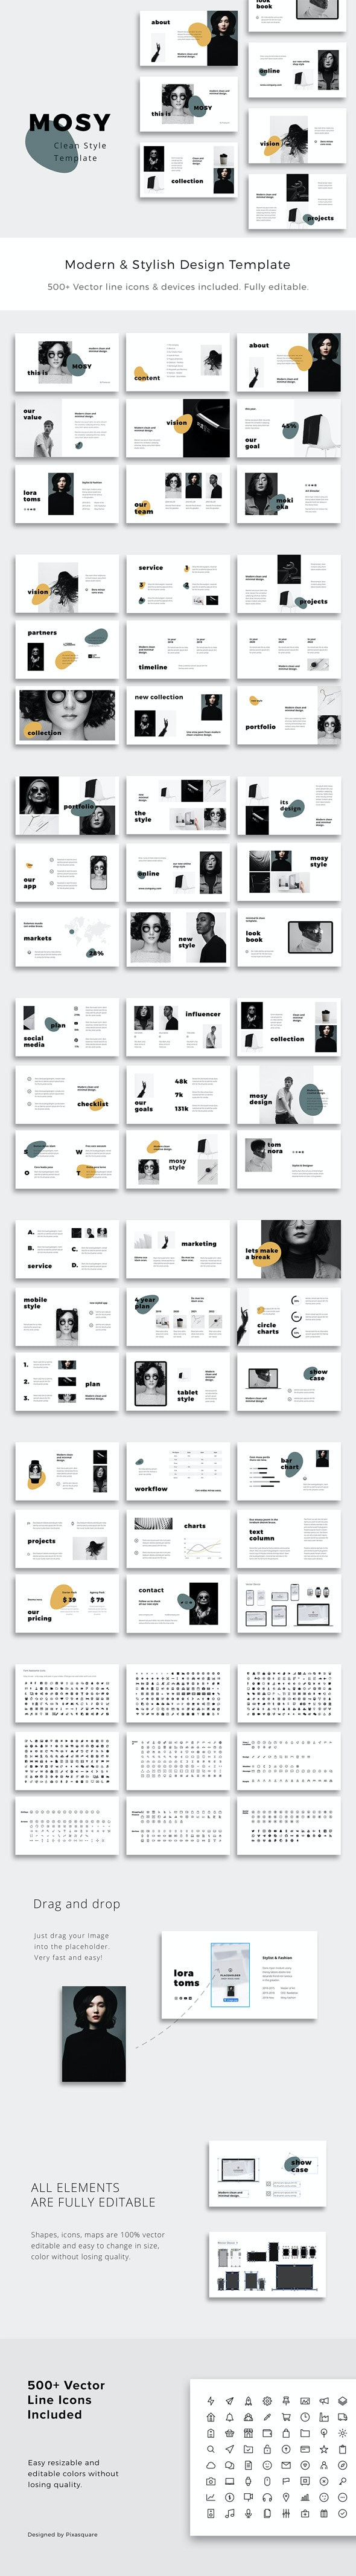 MOSY - Google Slides Clean and Stylish Presentation Template - Google Slides Presentation Templates